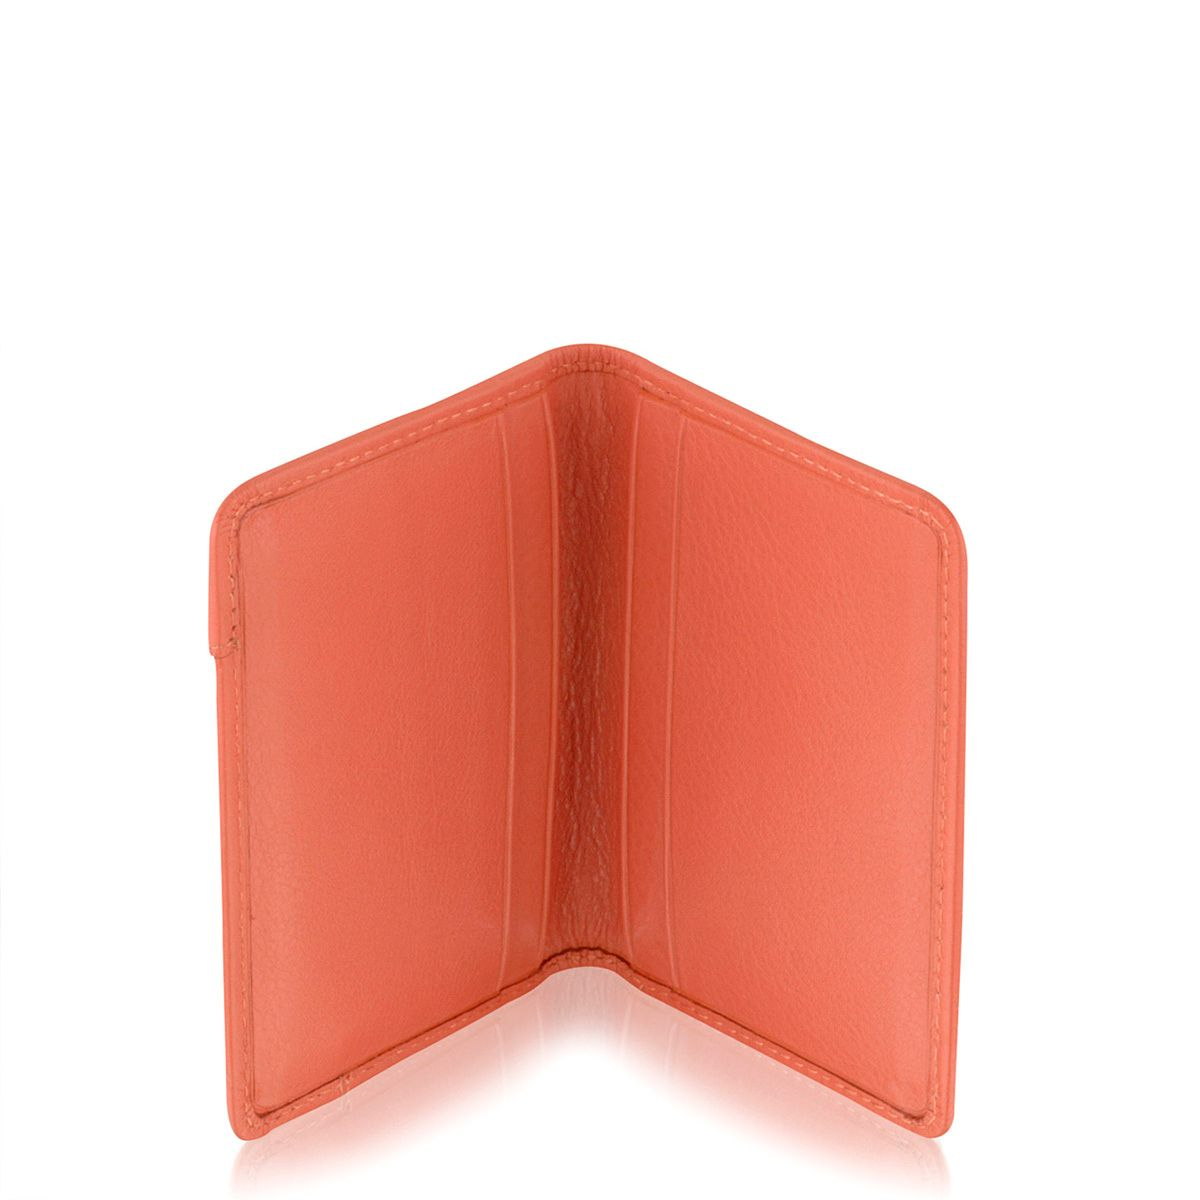 Pocket bag small coral cardholder